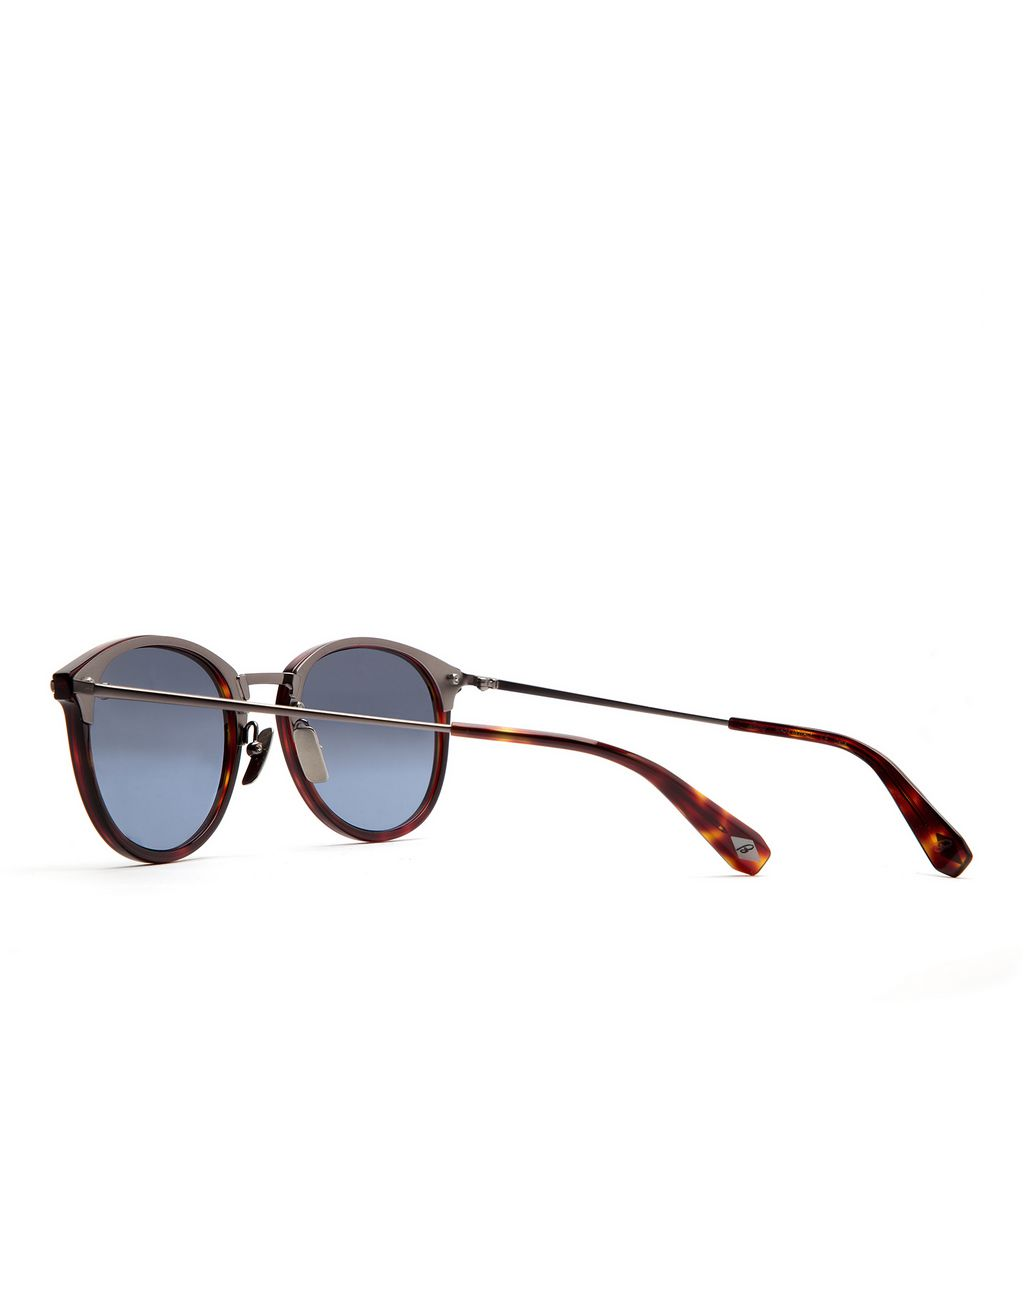 BRIONI Shiny Dark Havana Sunglasses with Silver Gradient Lenses Sunglasses Man d